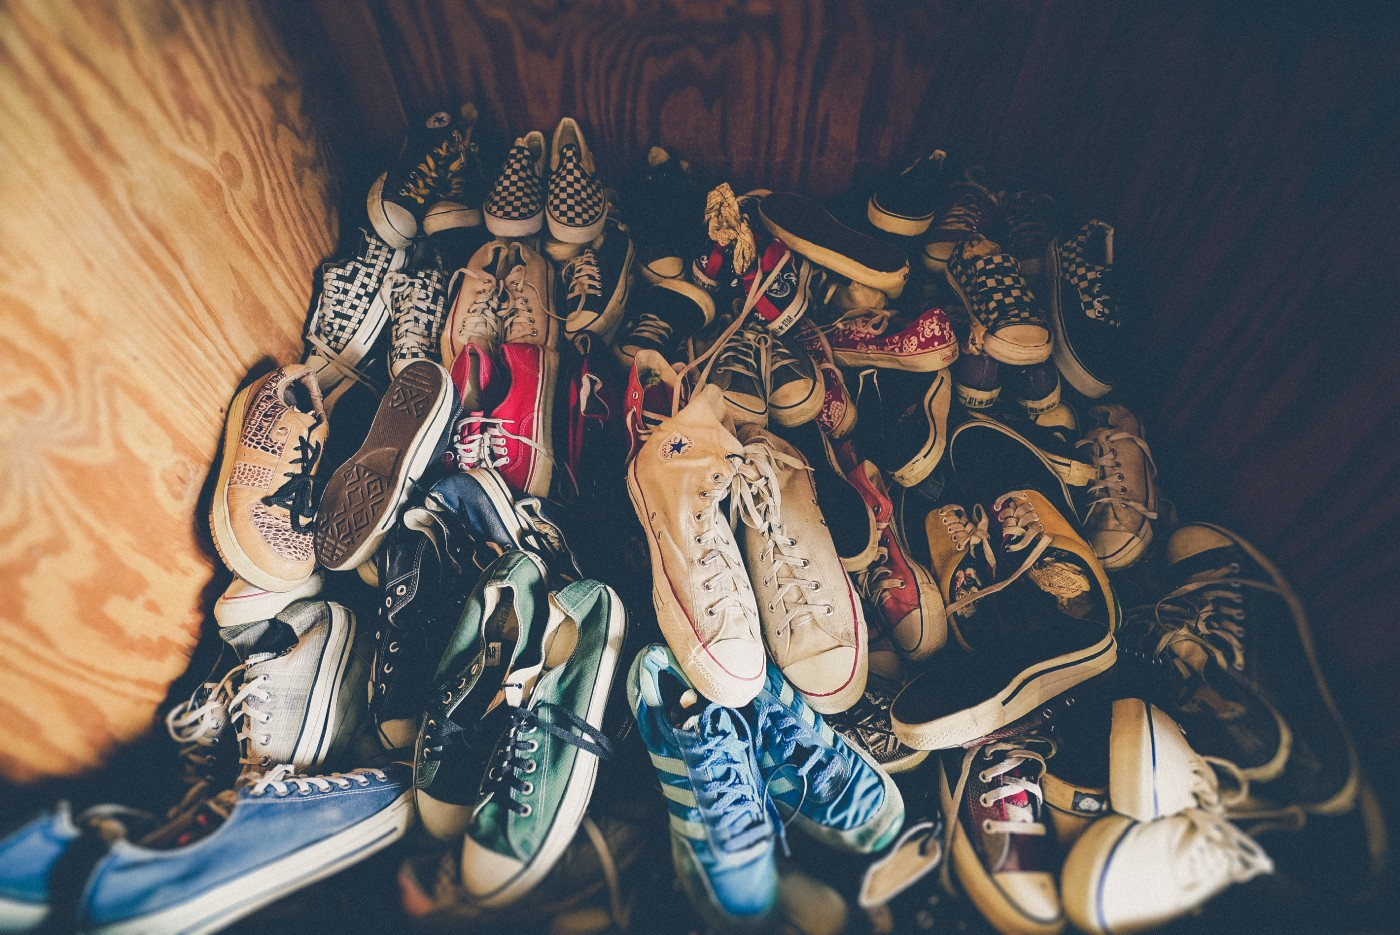 A wooden cubby filled with dozens of disordered shoes, each varying in color, shape, and position.